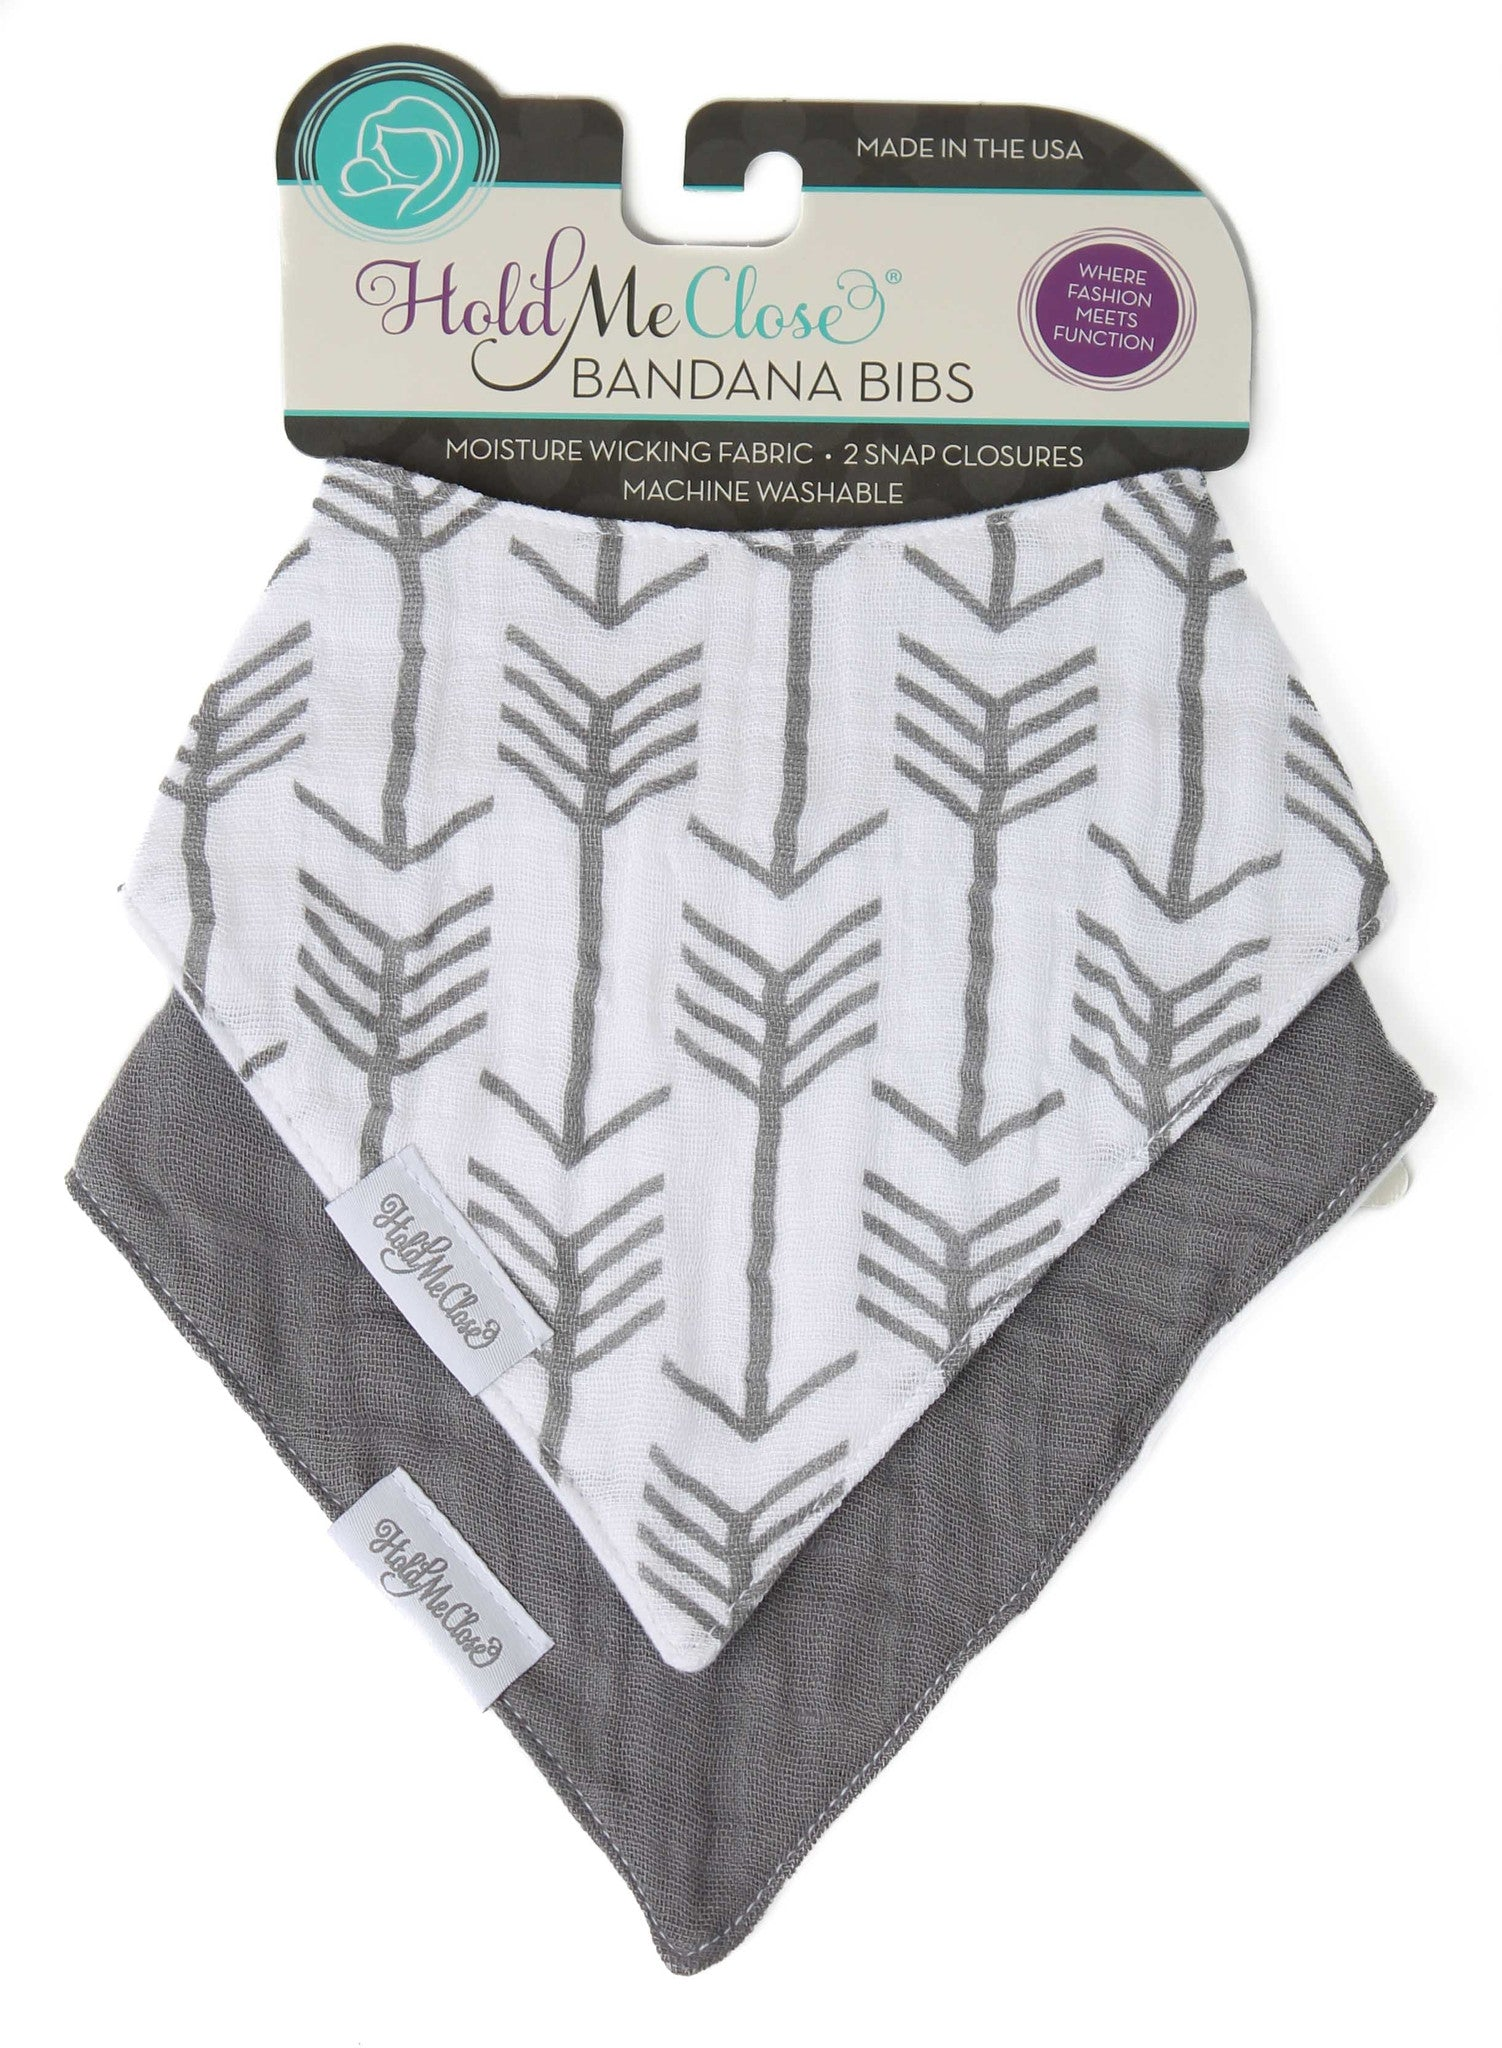 Set of 2 Cotton Muslin Baby Bandana Bibs - White with Gray Arrows and Solid Charcoal